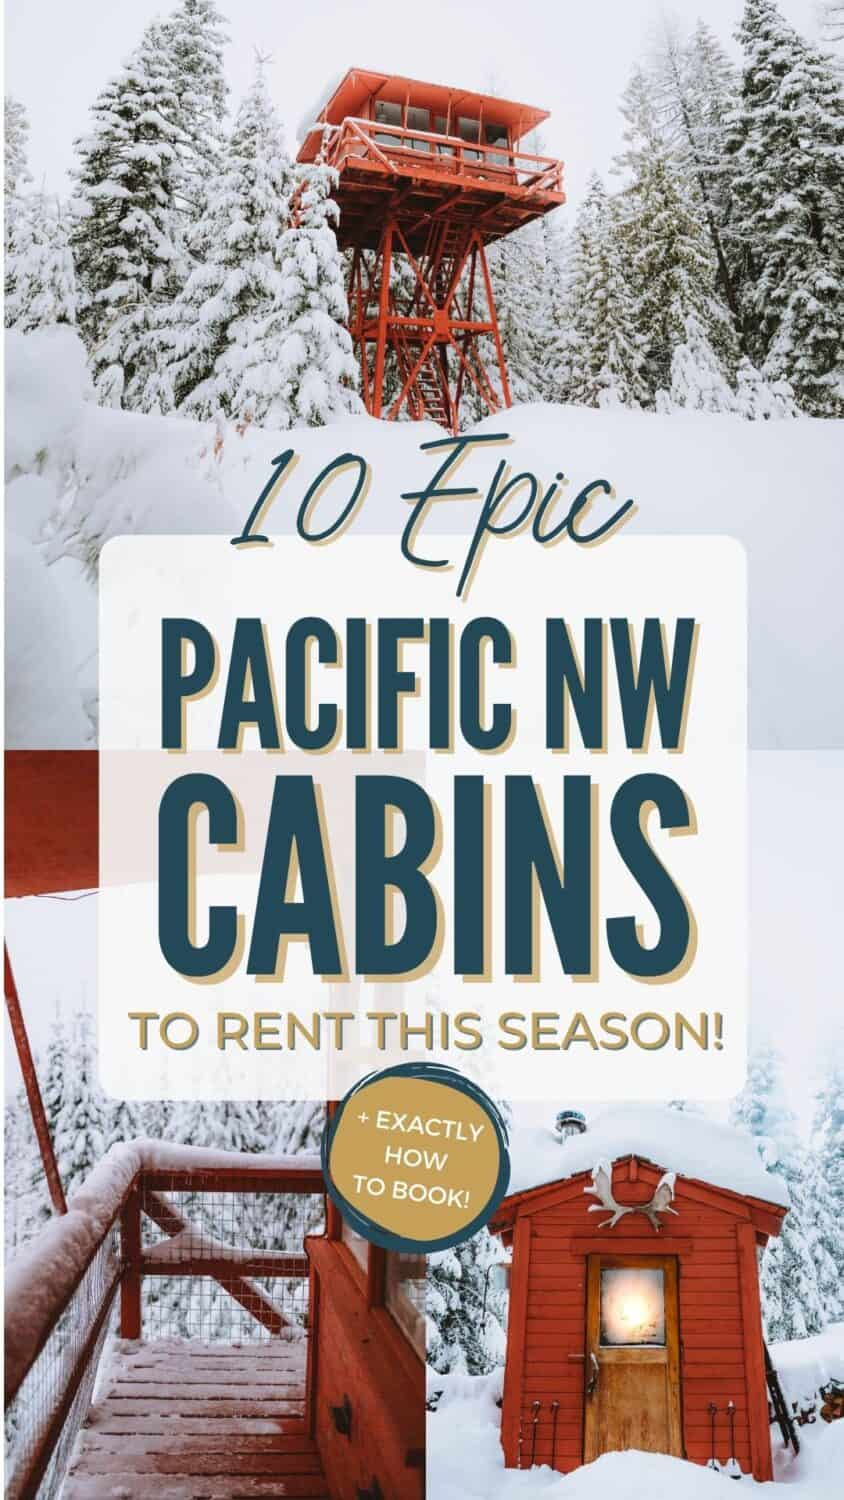 Looking for a cozy getaway this season? We're sharing the best Pacific Northwest cabins for rent, from tiny homes, treehouses, cozy cabins and more! #cabins #PNW #pacificNorthwest #cozycabin #sanjuanislands #columbiariver #oregon #washington #idaho #vacationrental #travel #montana #Britishcolumbia #rental #cabin